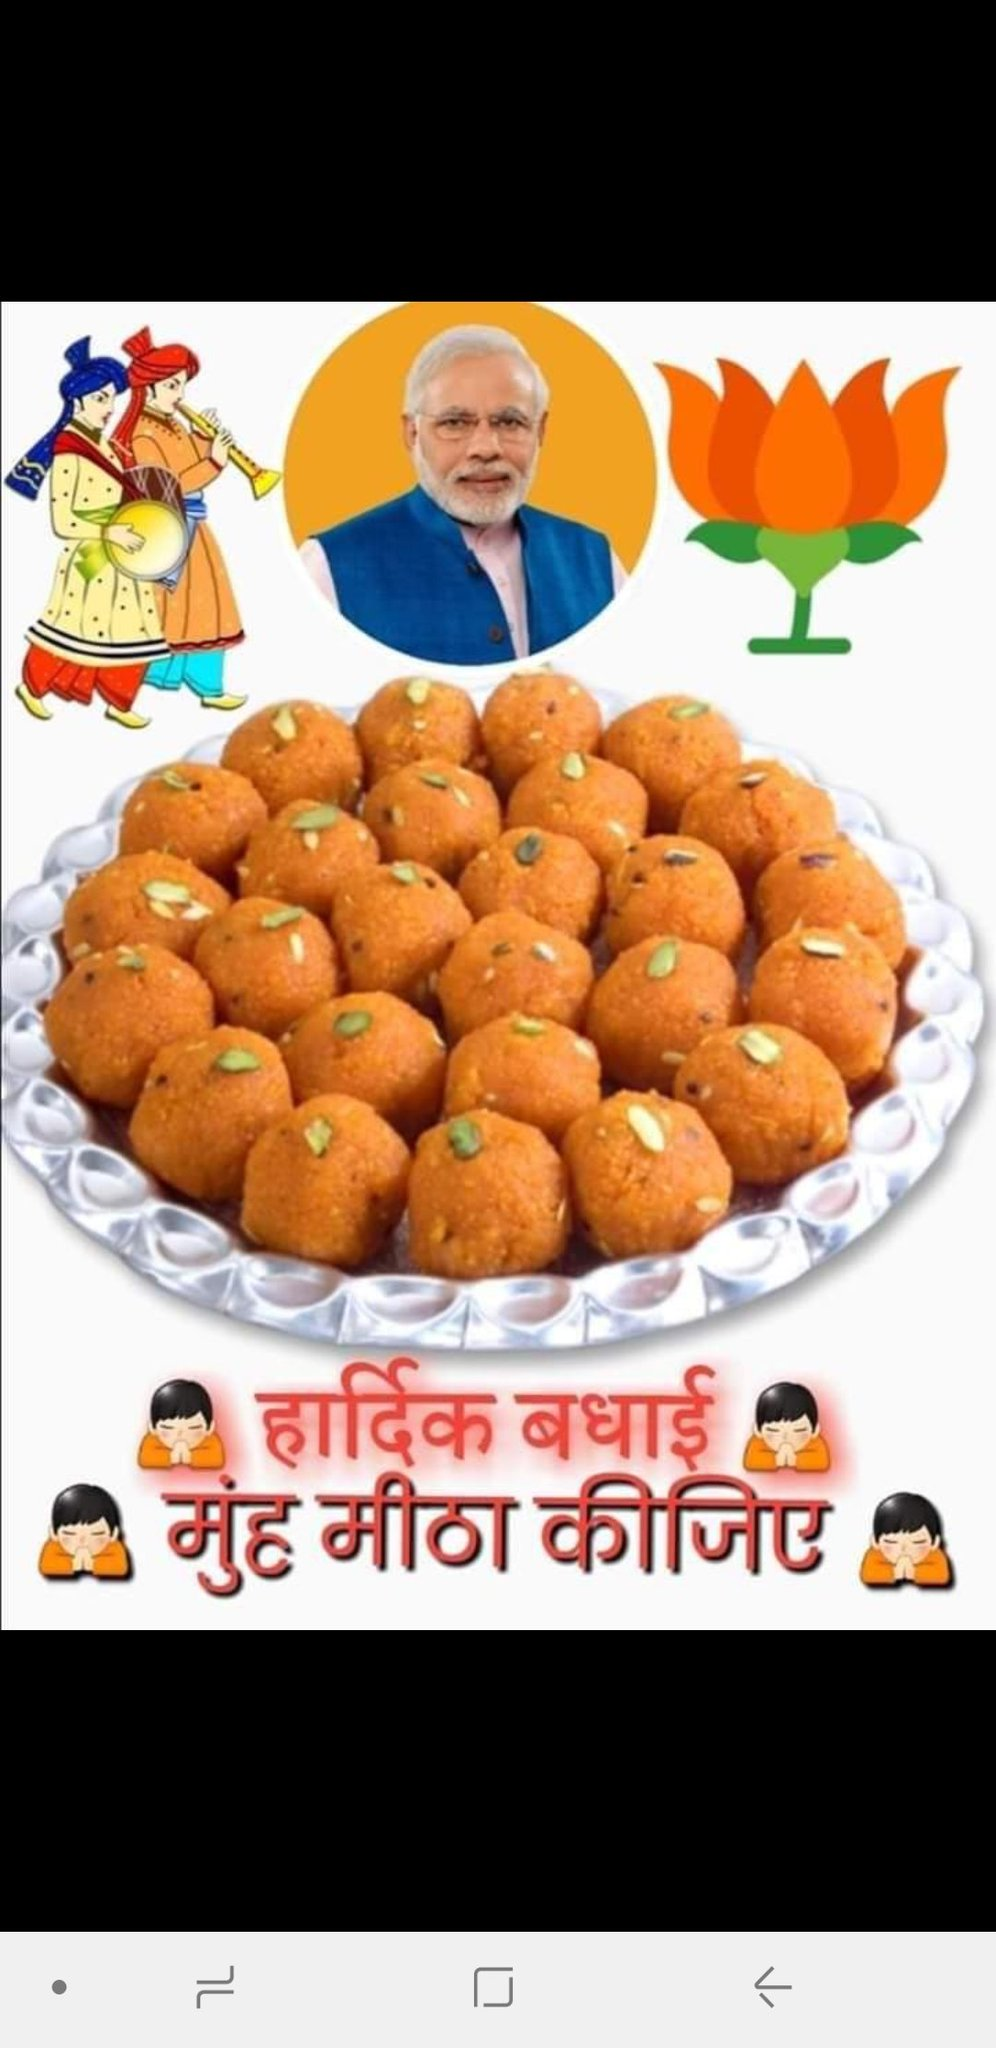 happy birthday to ji from 2.5 cr people of Chhattisgarh.